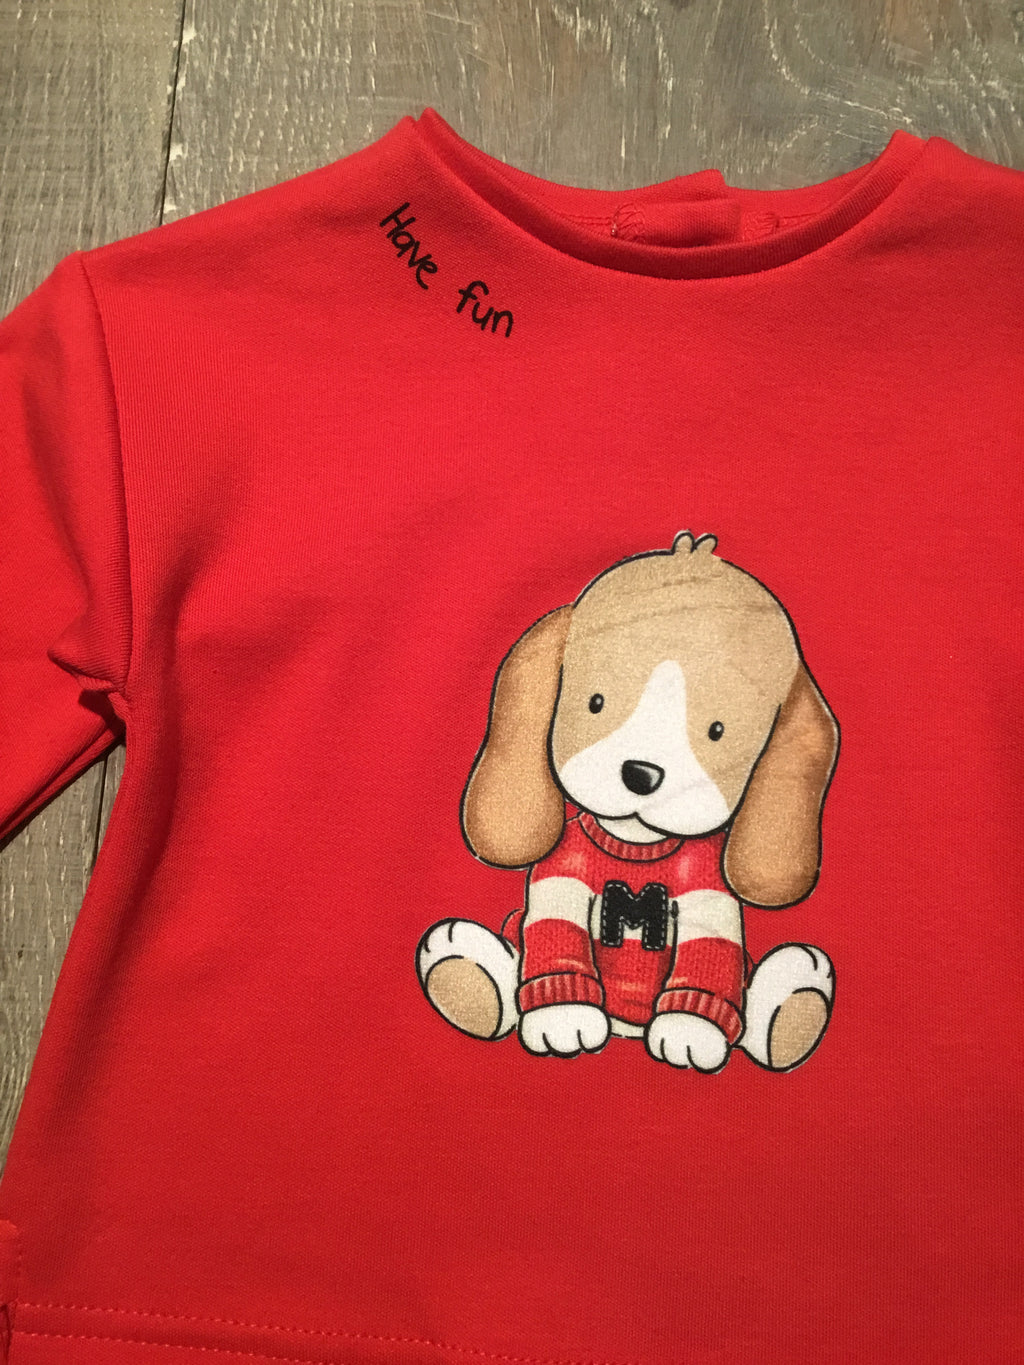 """Have Fun"" Pup - Red LS Tee"